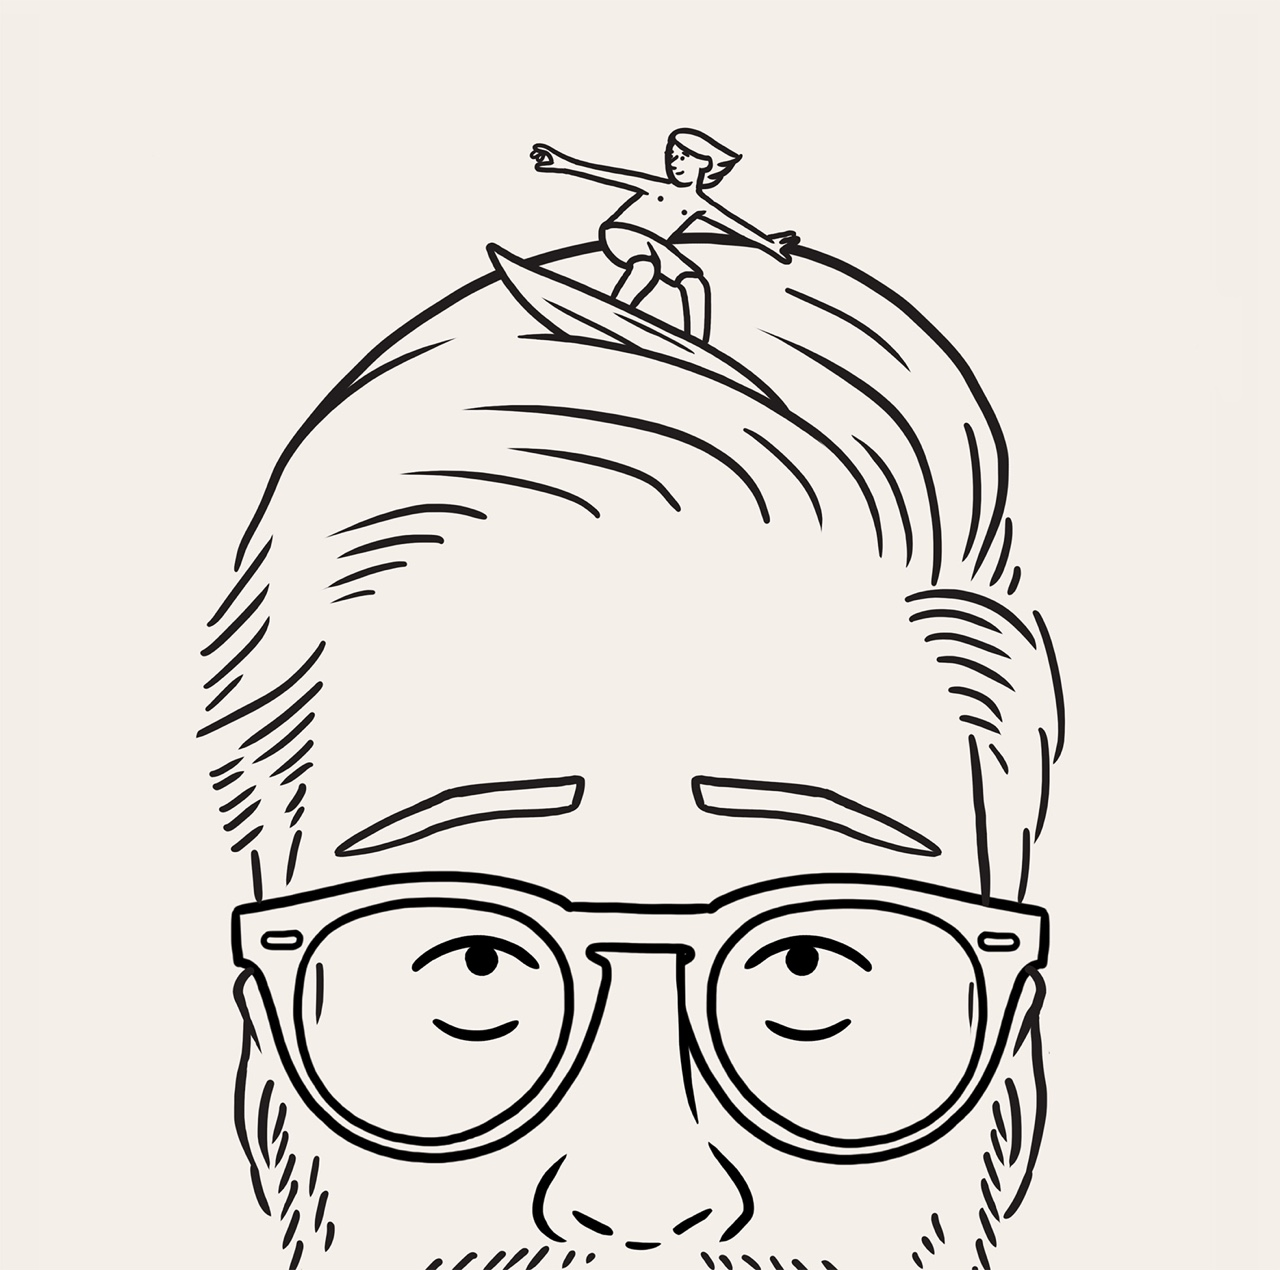 Le brillanti illustrazioni dell'artista Matt Blease | Collater.al 15